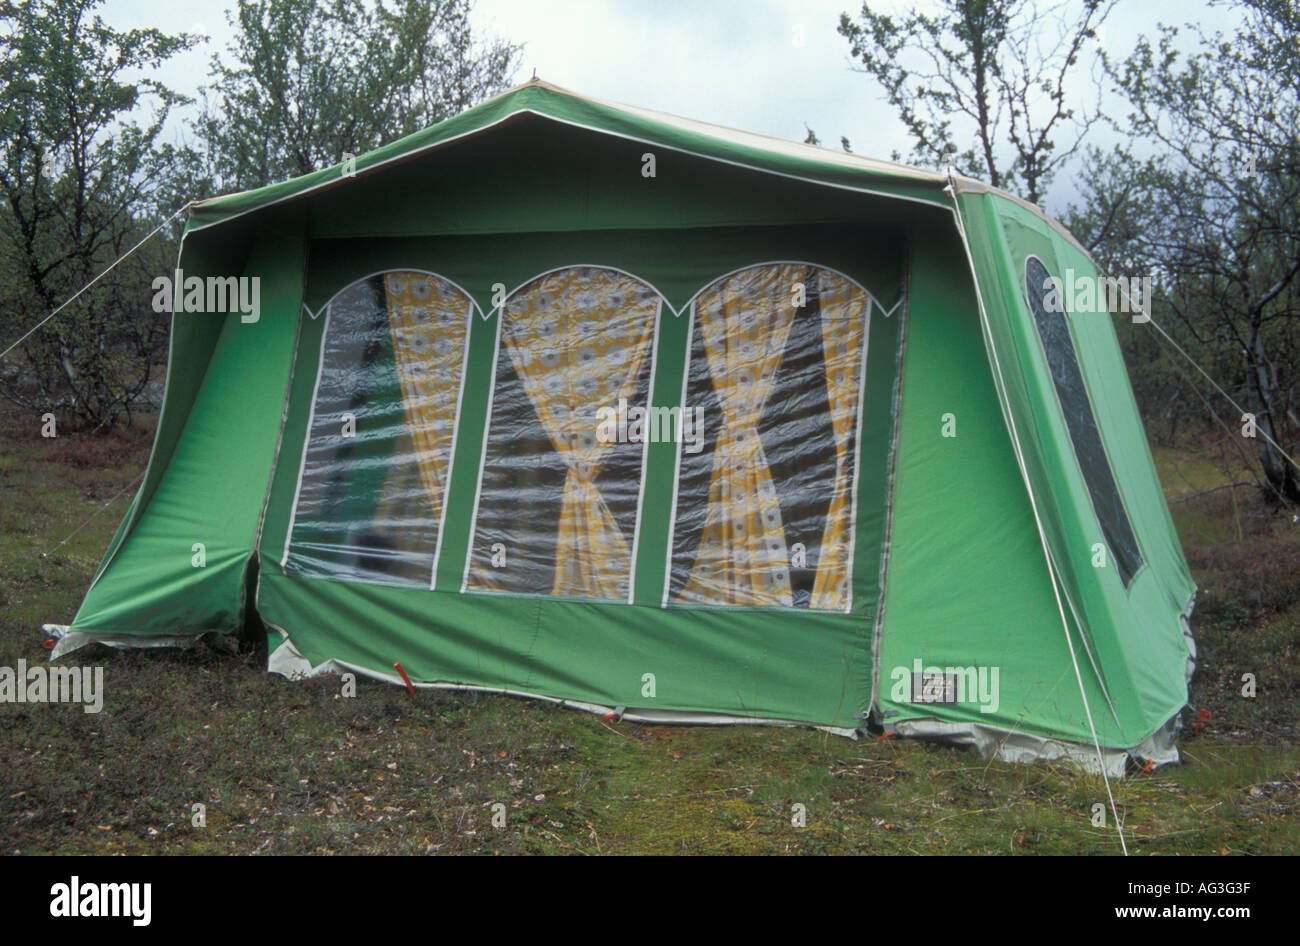 Old fashioned style square tent in the back of a house in Vestre Jakobselv Norway & Old fashioned style square tent in the back of a house in Vestre ...